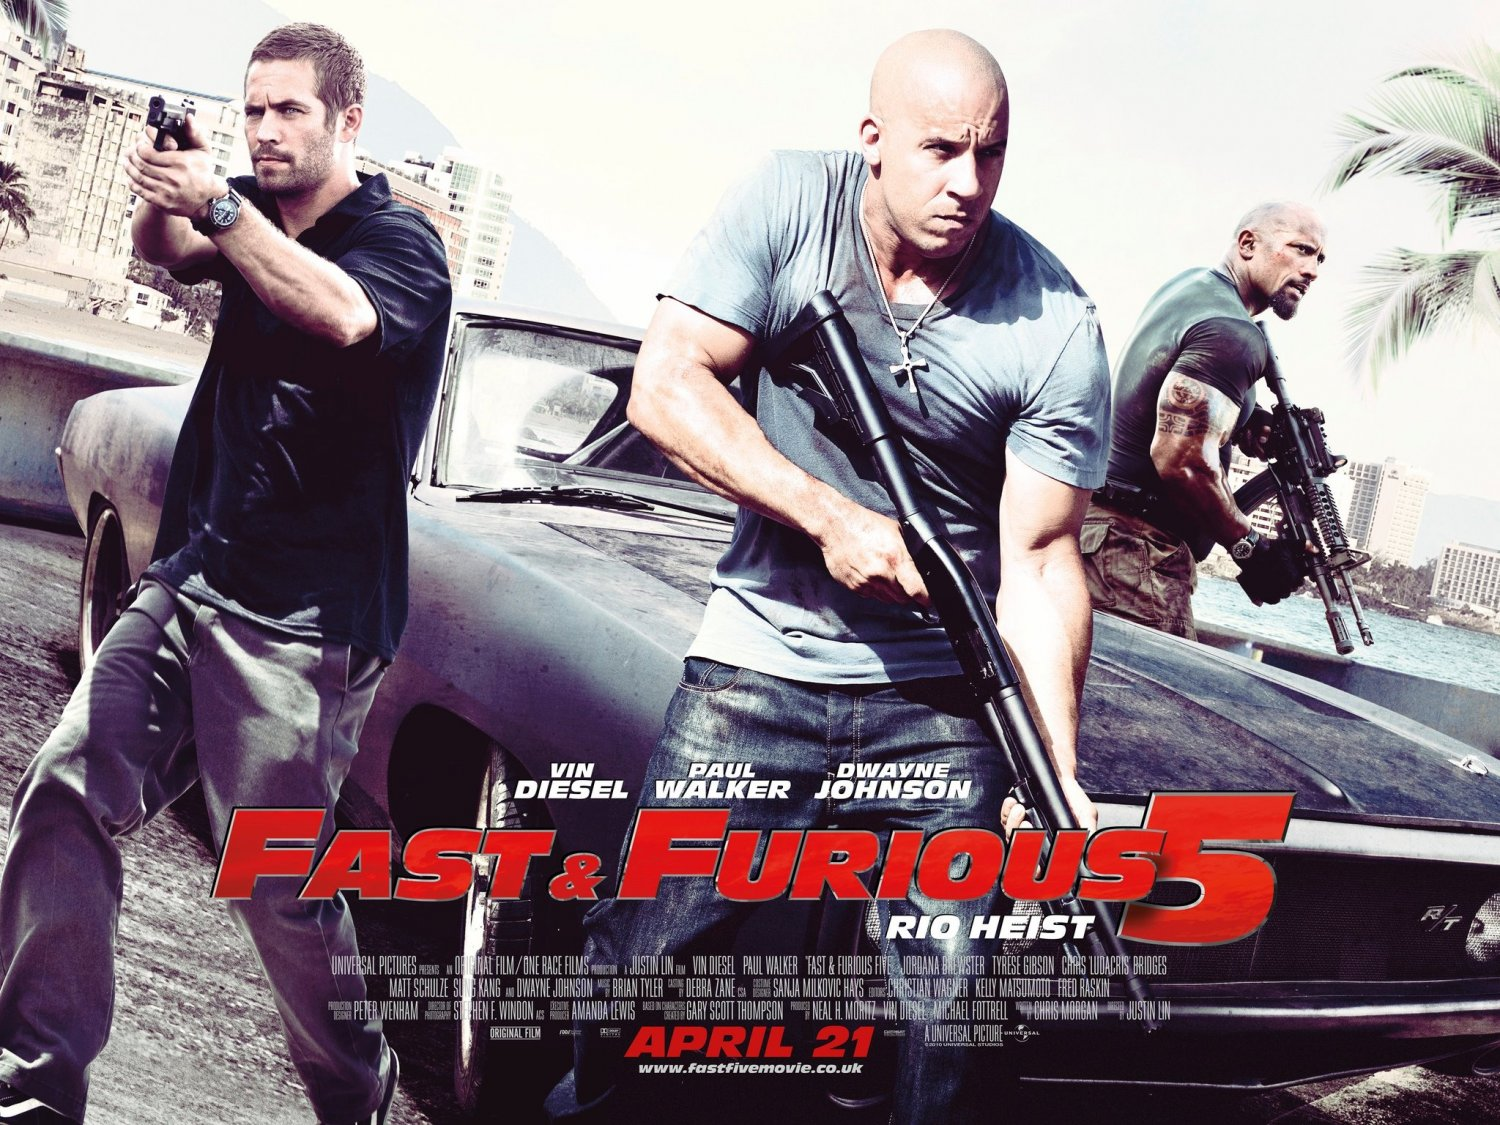 FAST AND FURIOUS 5 (2011) TAMIL DUBBED HD